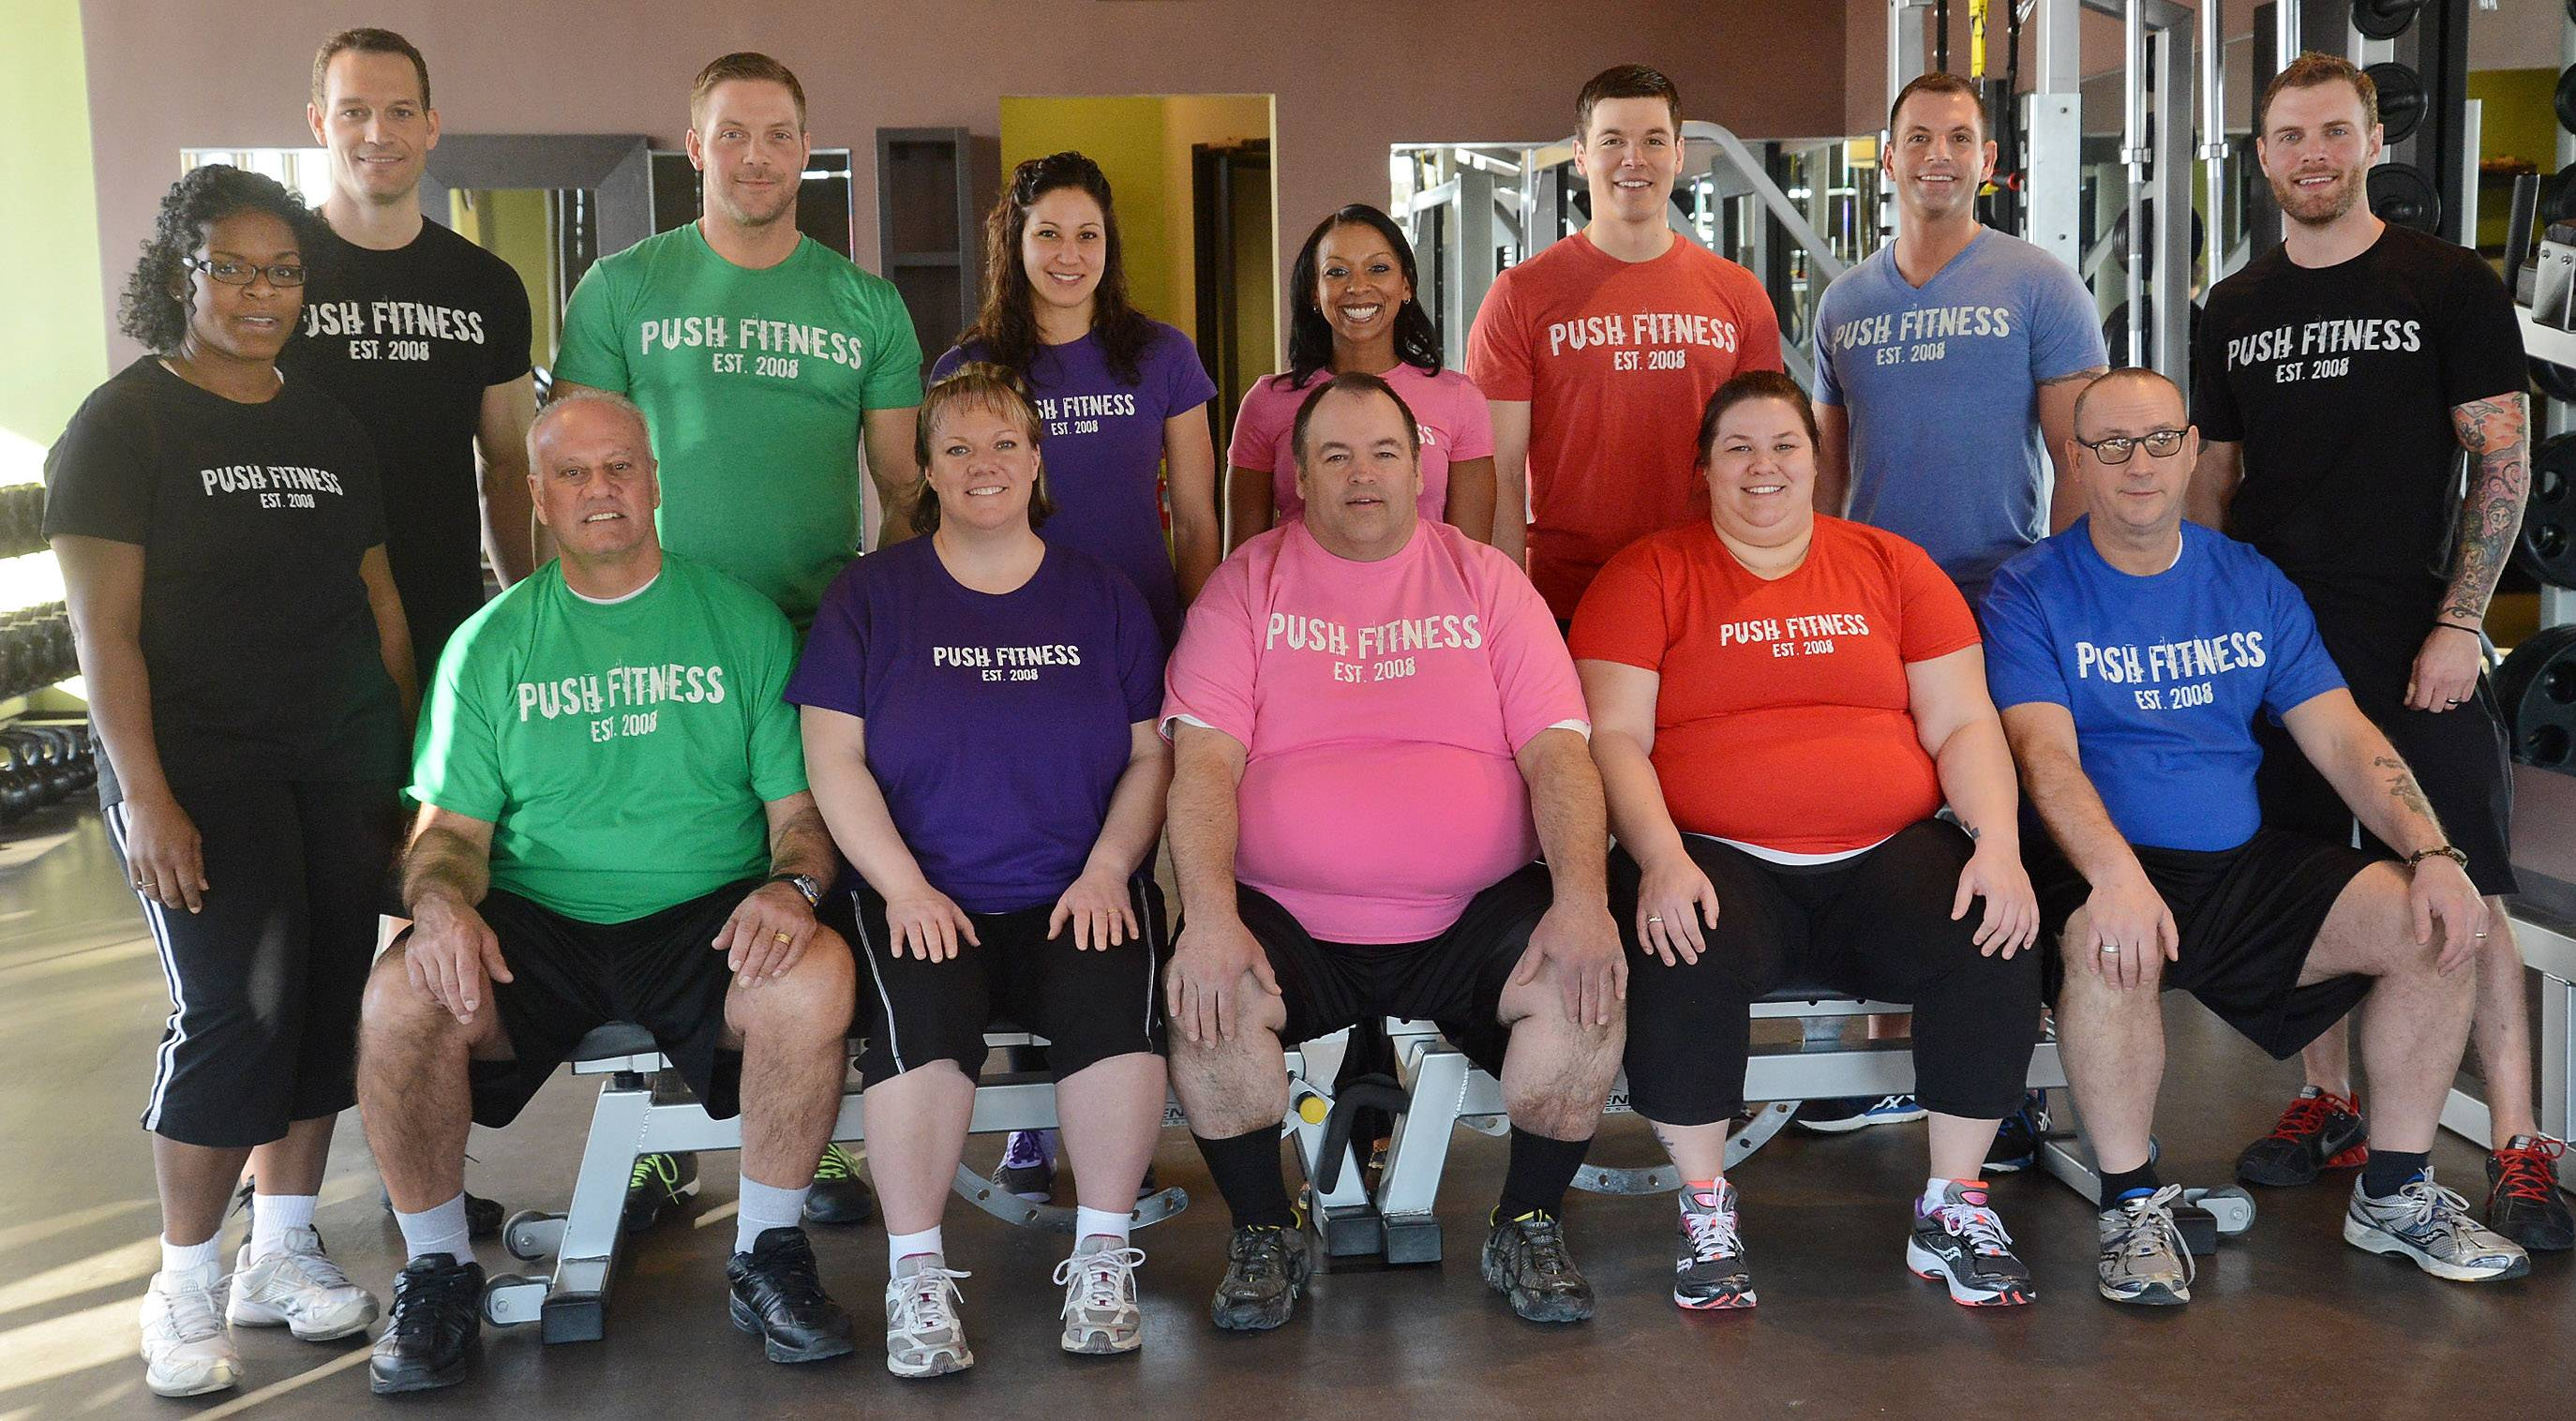 From left, Team Black, Lisa Jones Townsel and Joshua Steckler; Team Green, Chris Kalamatas and Brodie Medlock; Team Purple, Cheryl Seibert and Lindsay Vigna; Team Pink, John Bohanek and Michelle Amsden; Team Red, Allie Monroe and Wade Merrill; Team Blue, Tim Lange and Steve Amsden; and Brad Parotto, boot camp instructor and run club organizer.